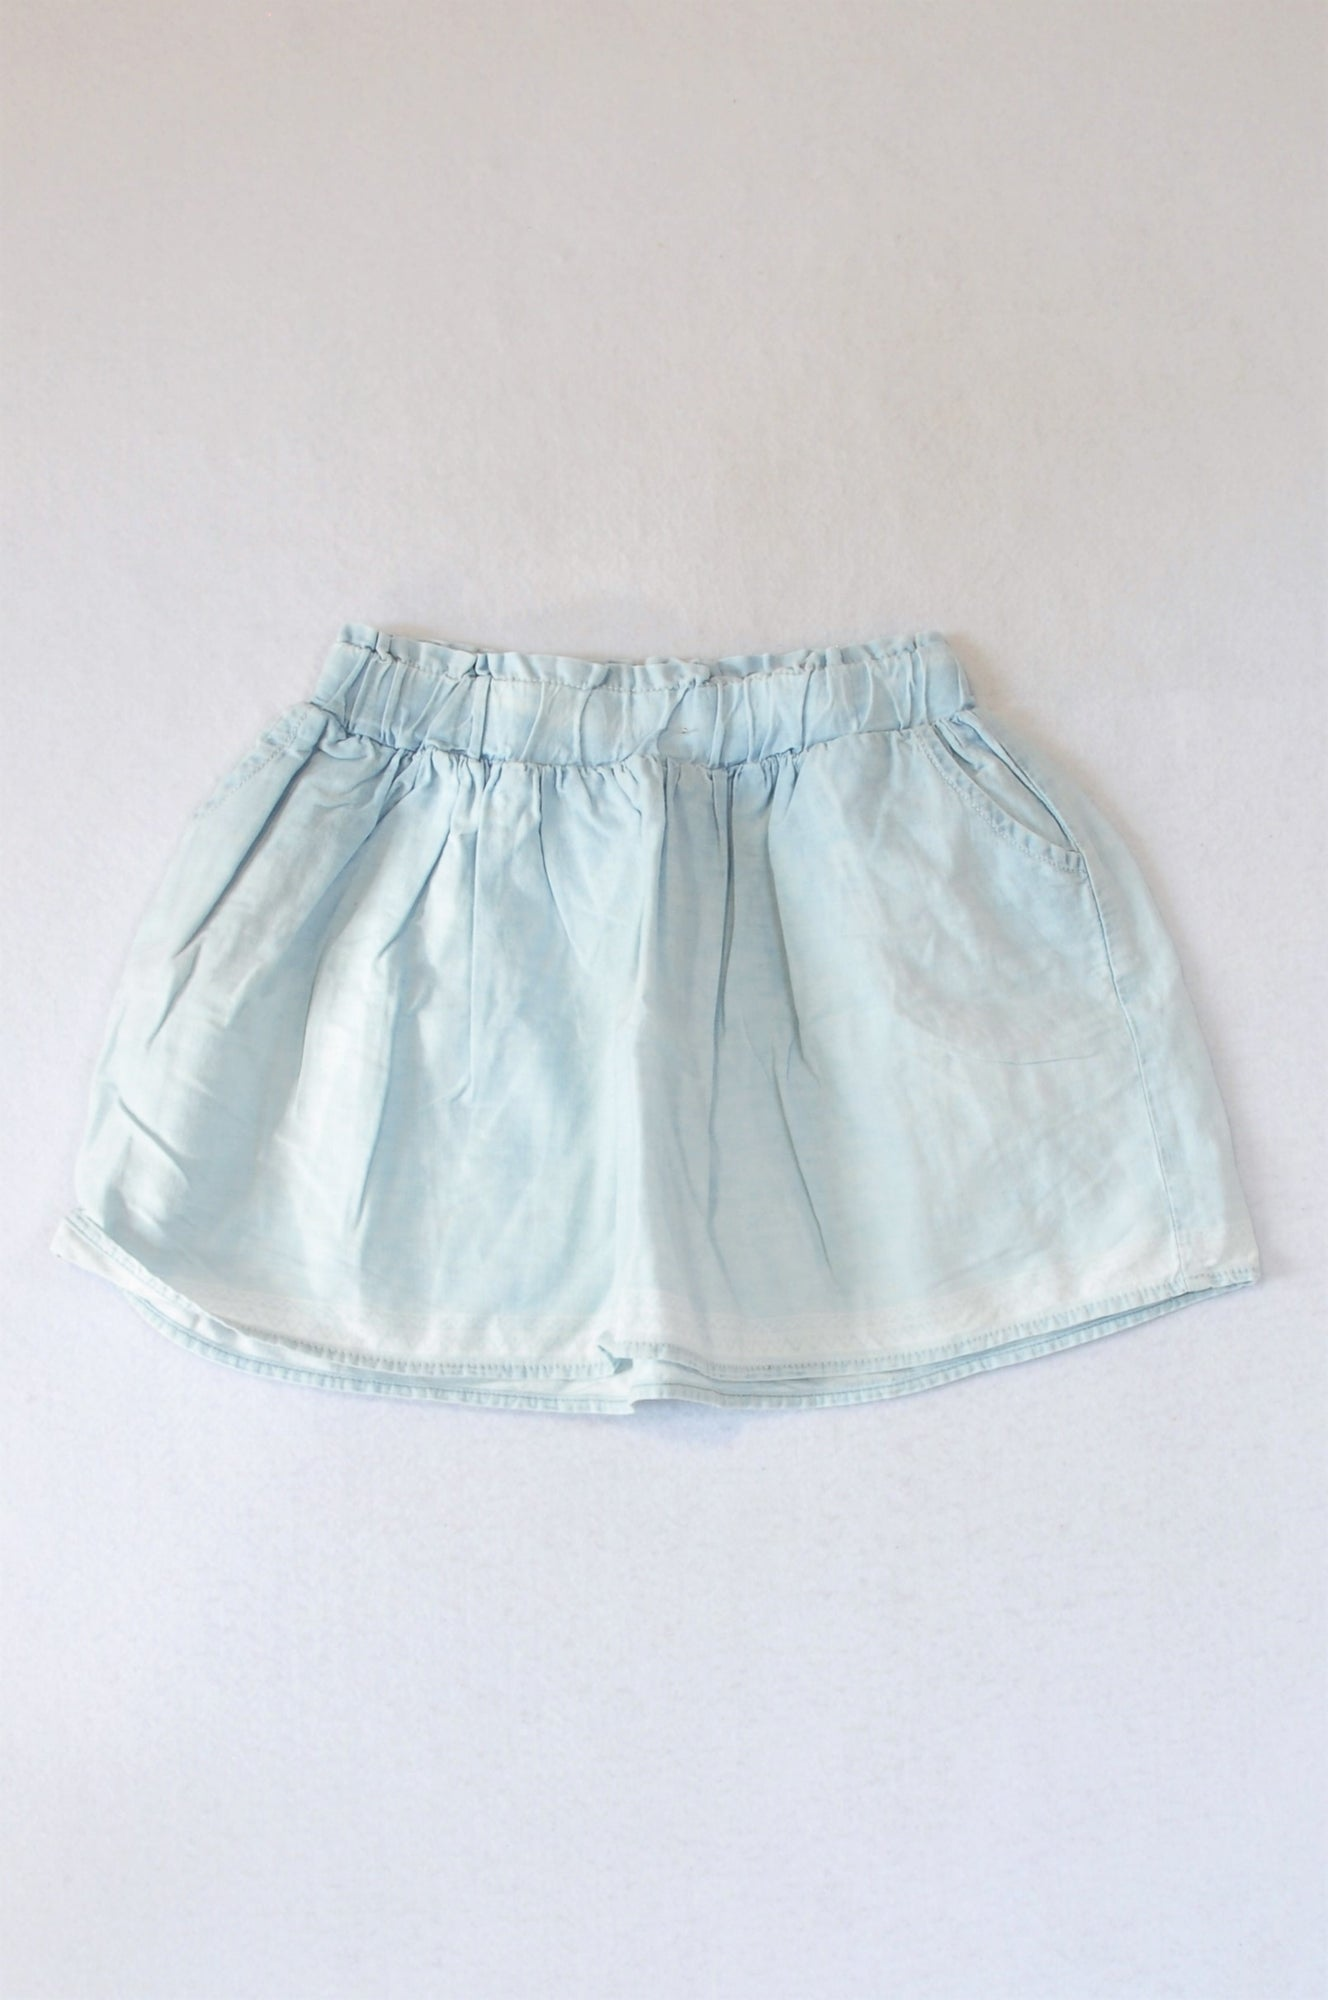 Woolworths Light Blue Chambray Skirt Girls 5-6 years